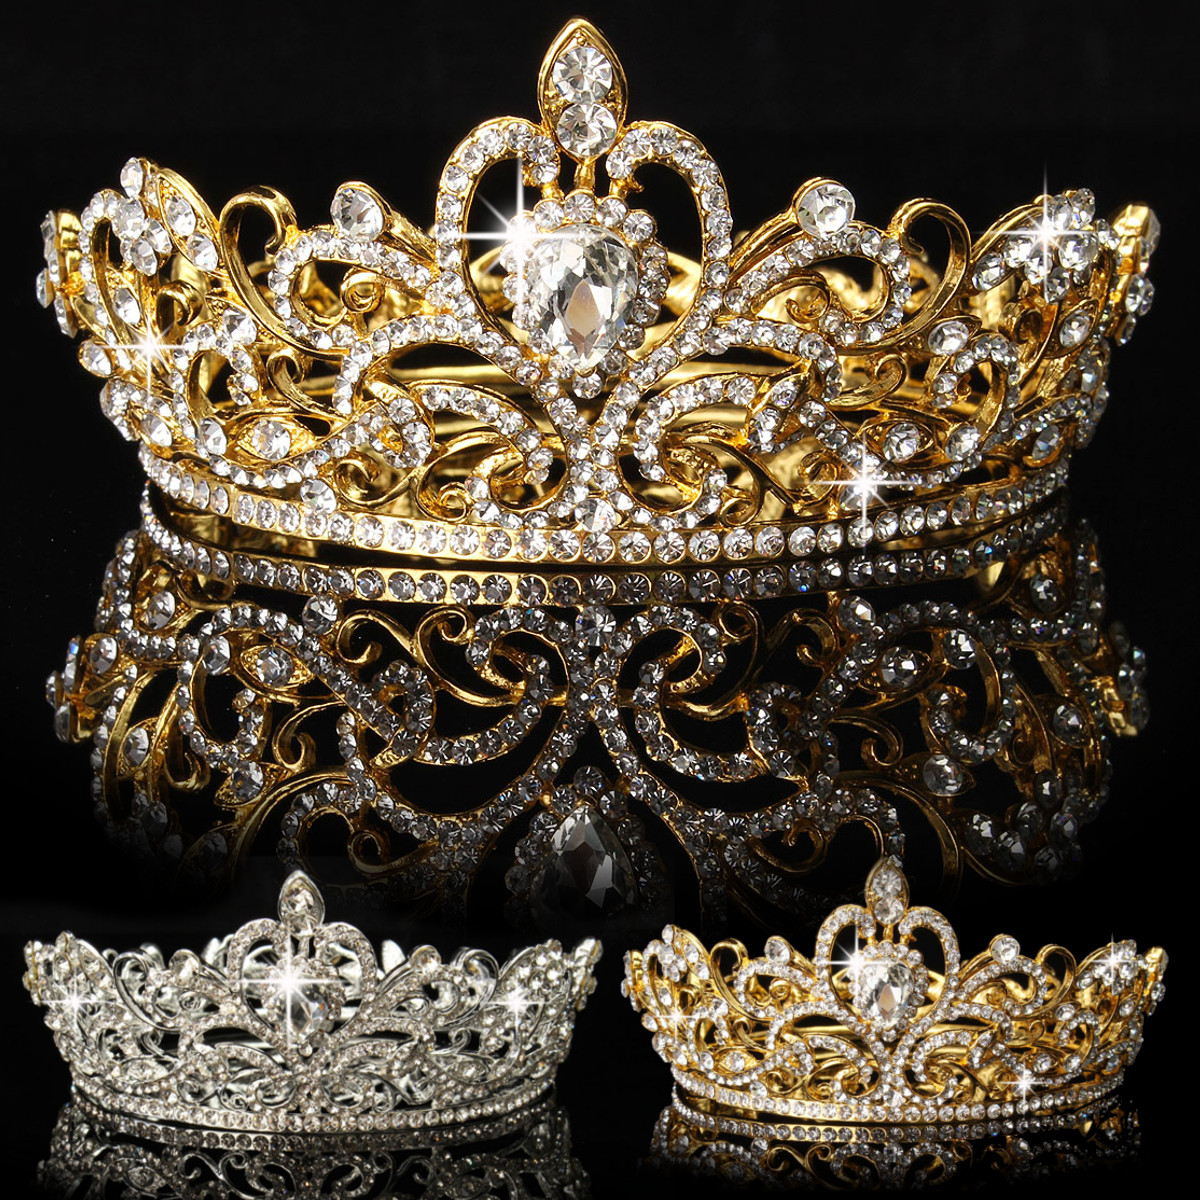 Luckyfine Crystal Rhinestone King Crown Tiara Wedding Pageant Bridal Diamante Headpiece